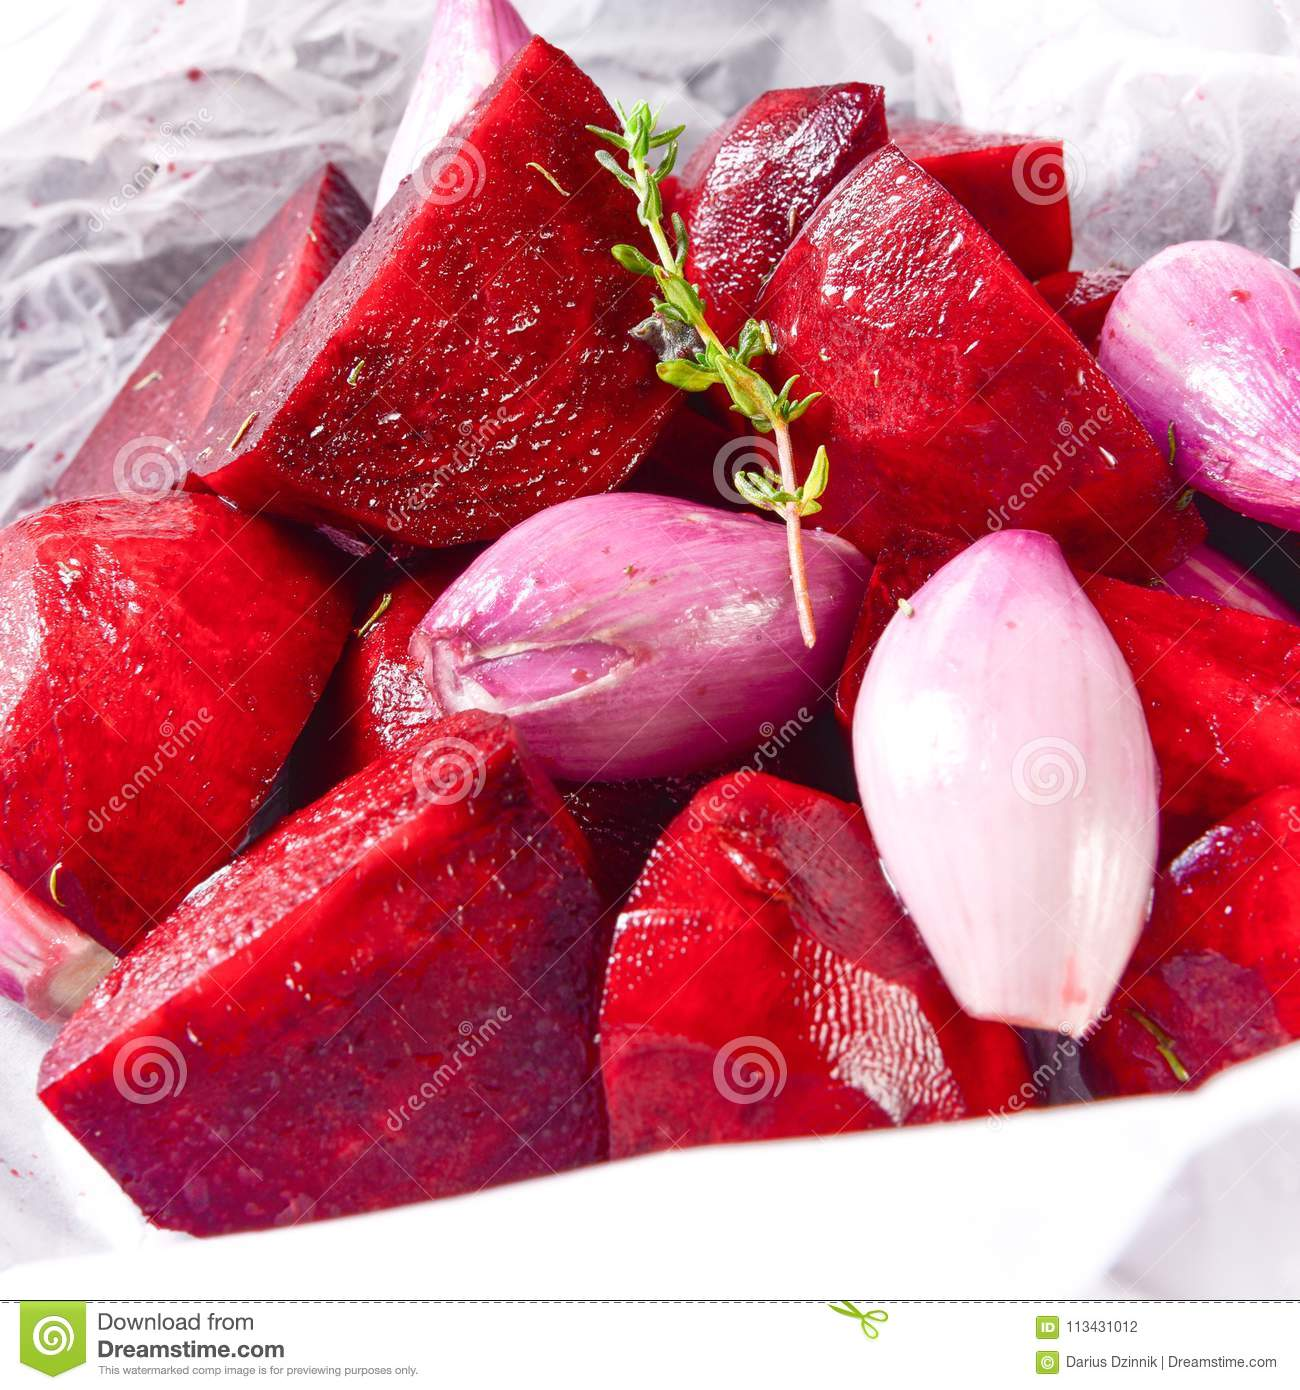 Oven baked red beets